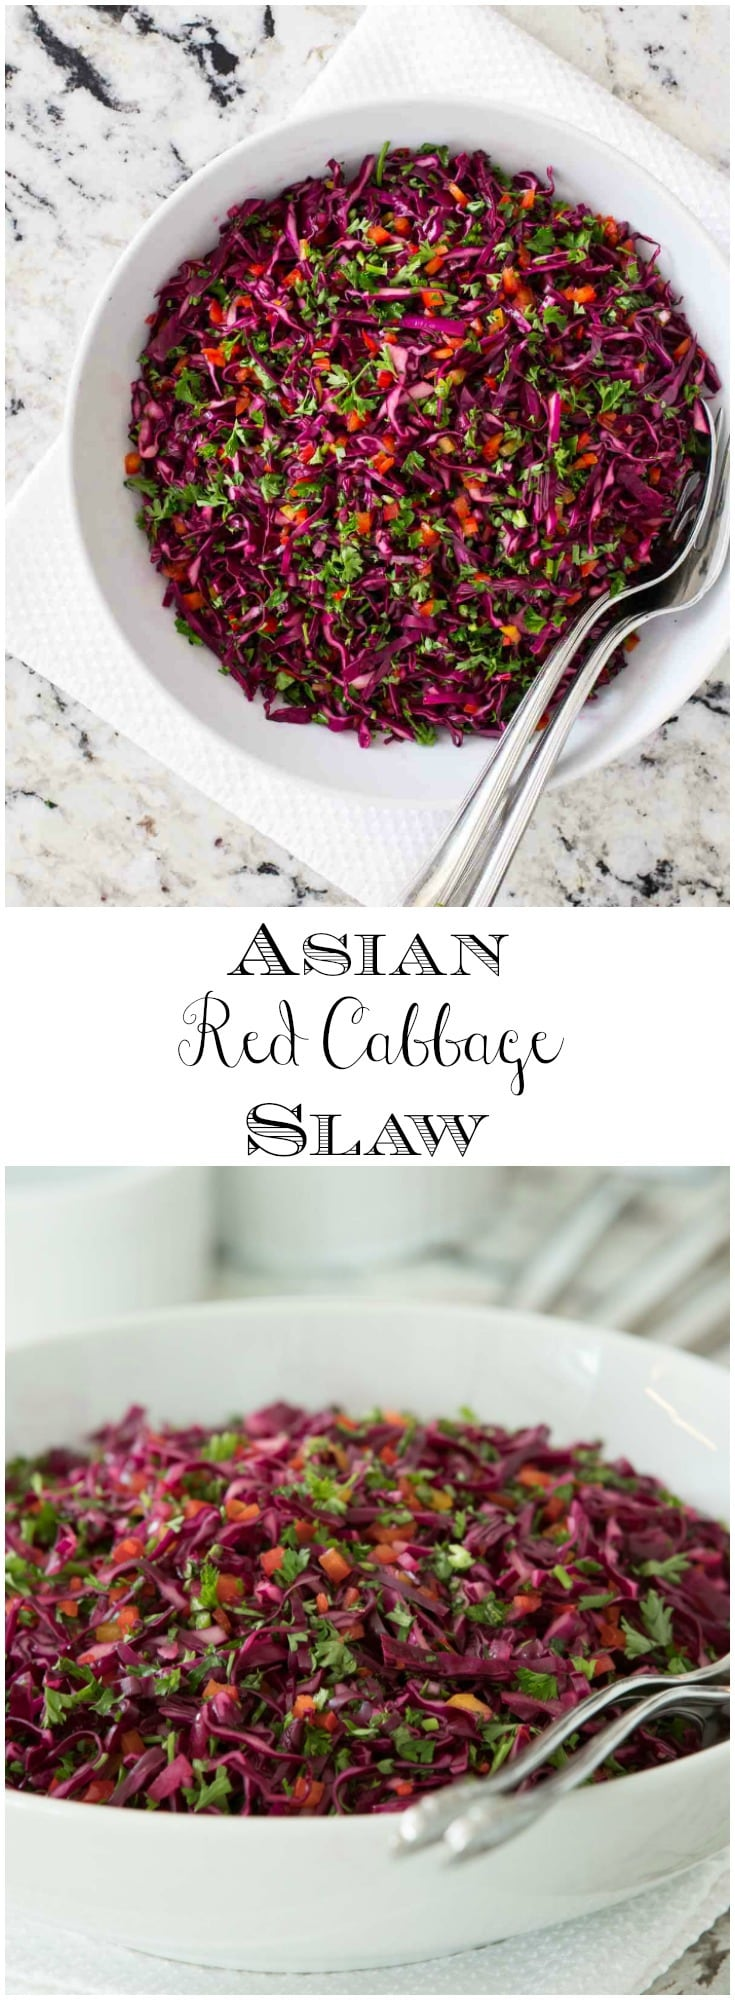 This fresh, healthy and delicious Asian Red Cabbage Slaw will take the boring out of everyday meals and entertaining menus. #redcabbage #salad #fresh #saladdressing #thecafesucrefarine #healthy #healthysaiad #Asiansalad